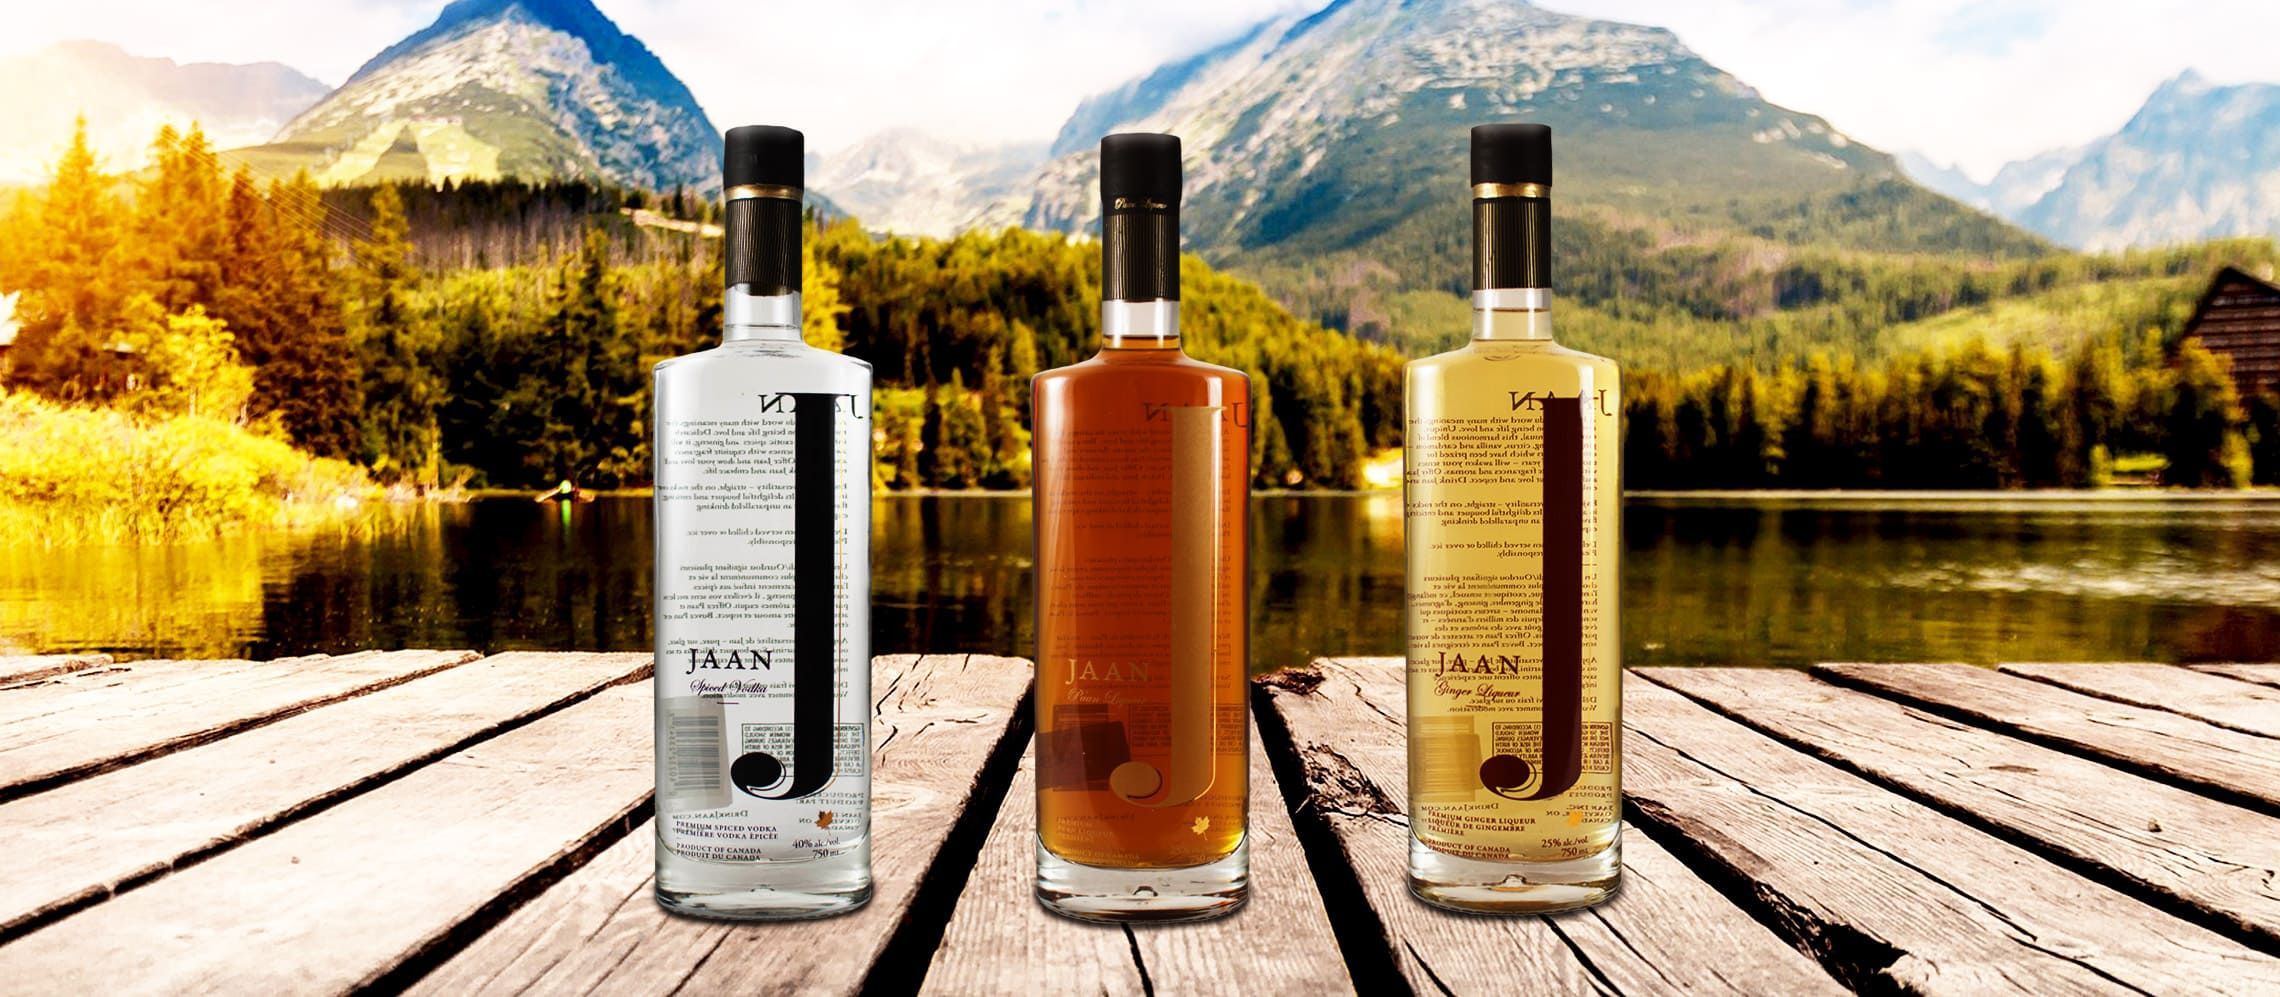 Photo for: Canadian Distillery Jaan Inc. Awarded Three Medals